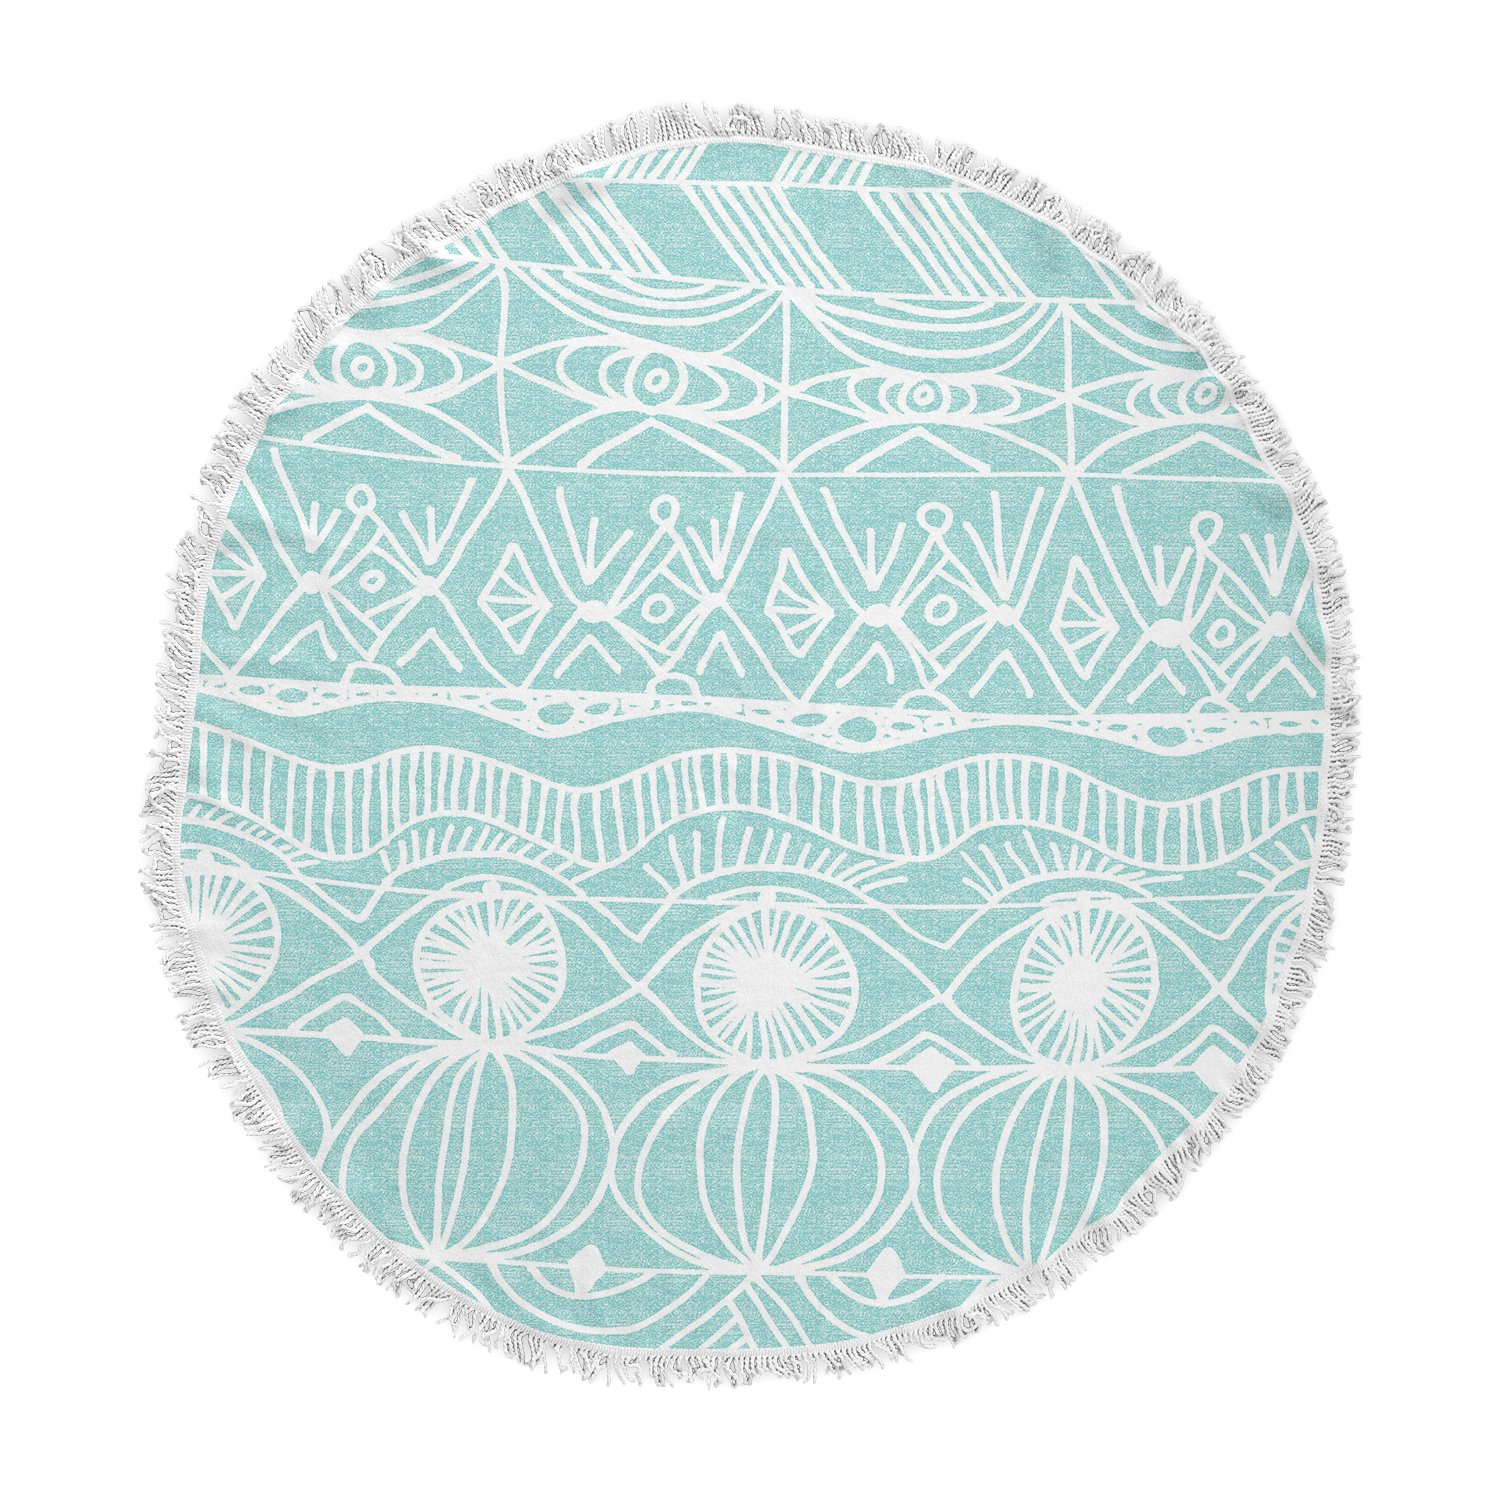 KESS InHouse Catherine Holcombe Bingo Round Beach Towel Blanket by Kess InHouse